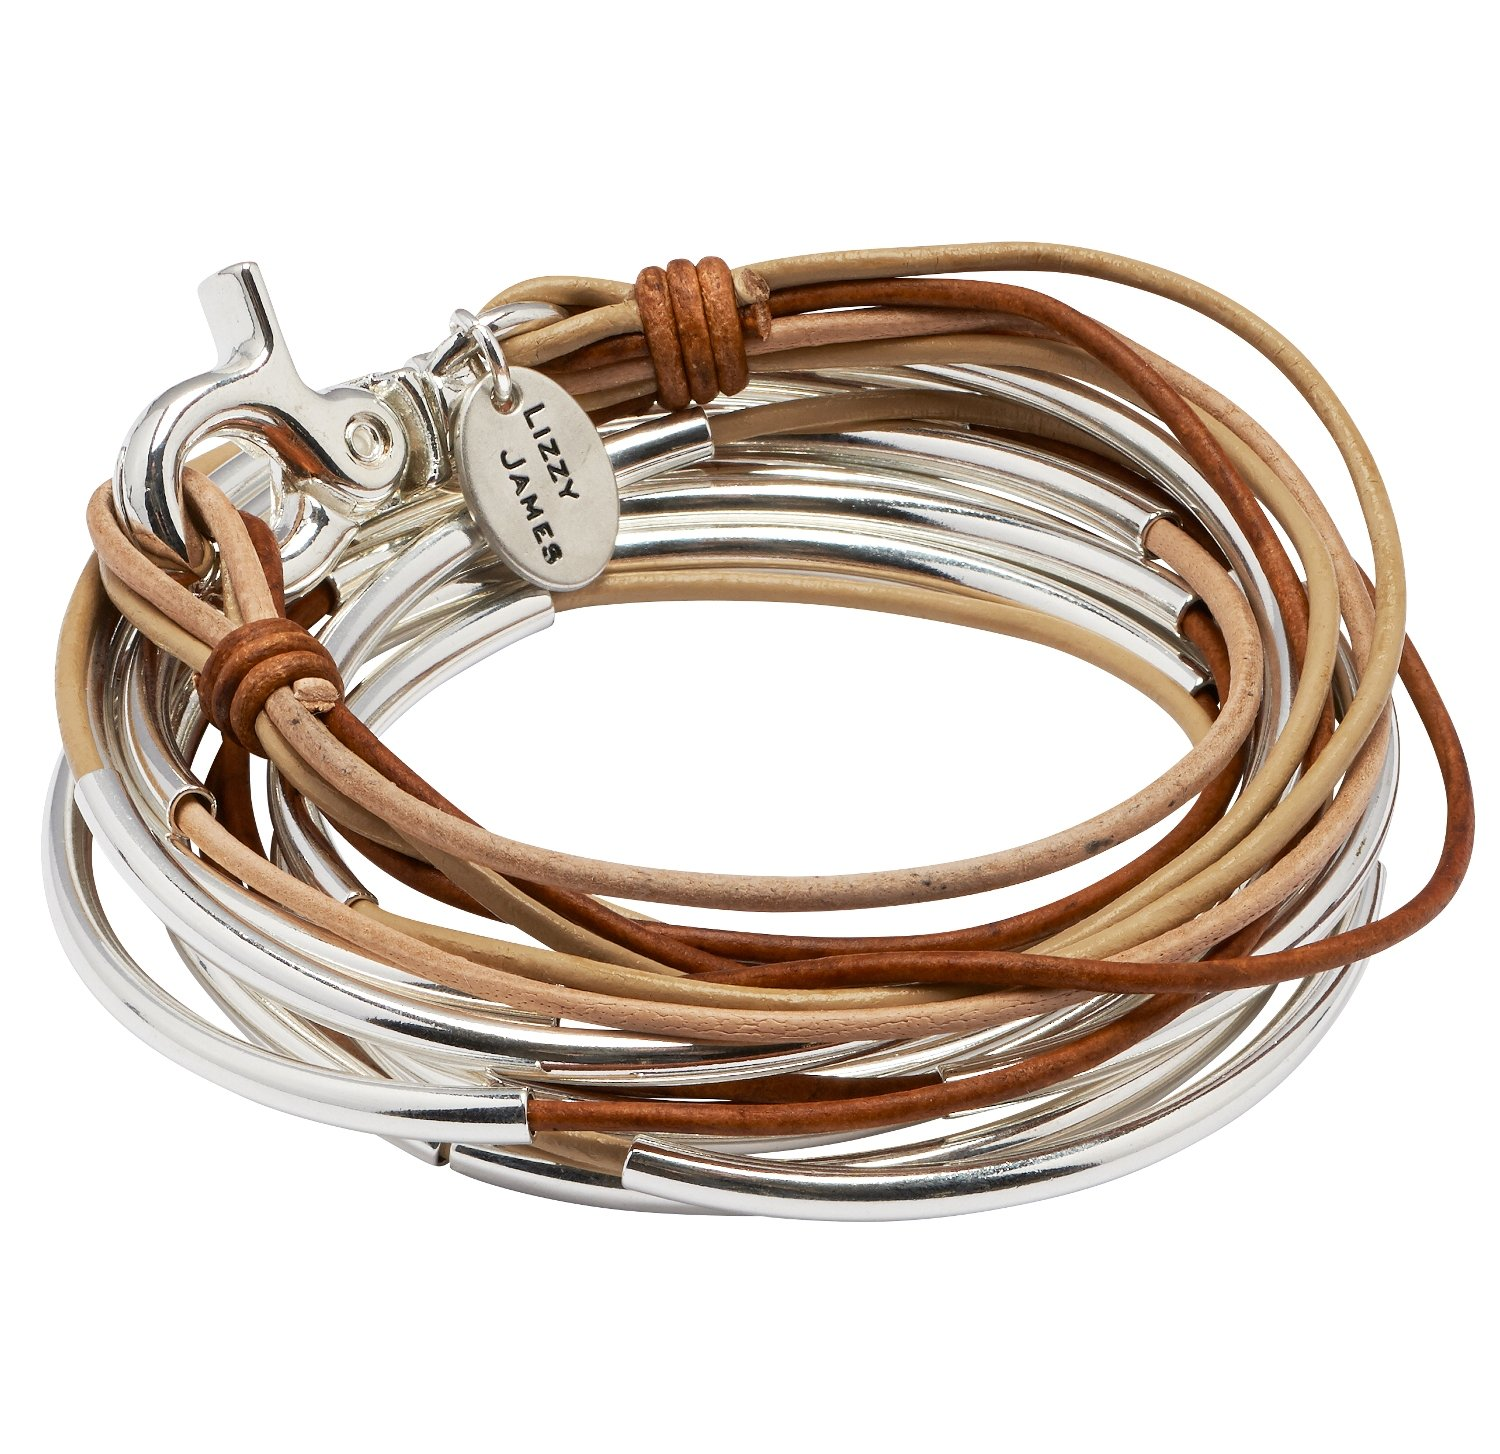 Lizzy Too Silverplated 5 Strand Tri Color Natural Light Brown Mixed Leather Wrap Bracelet (XLarge)